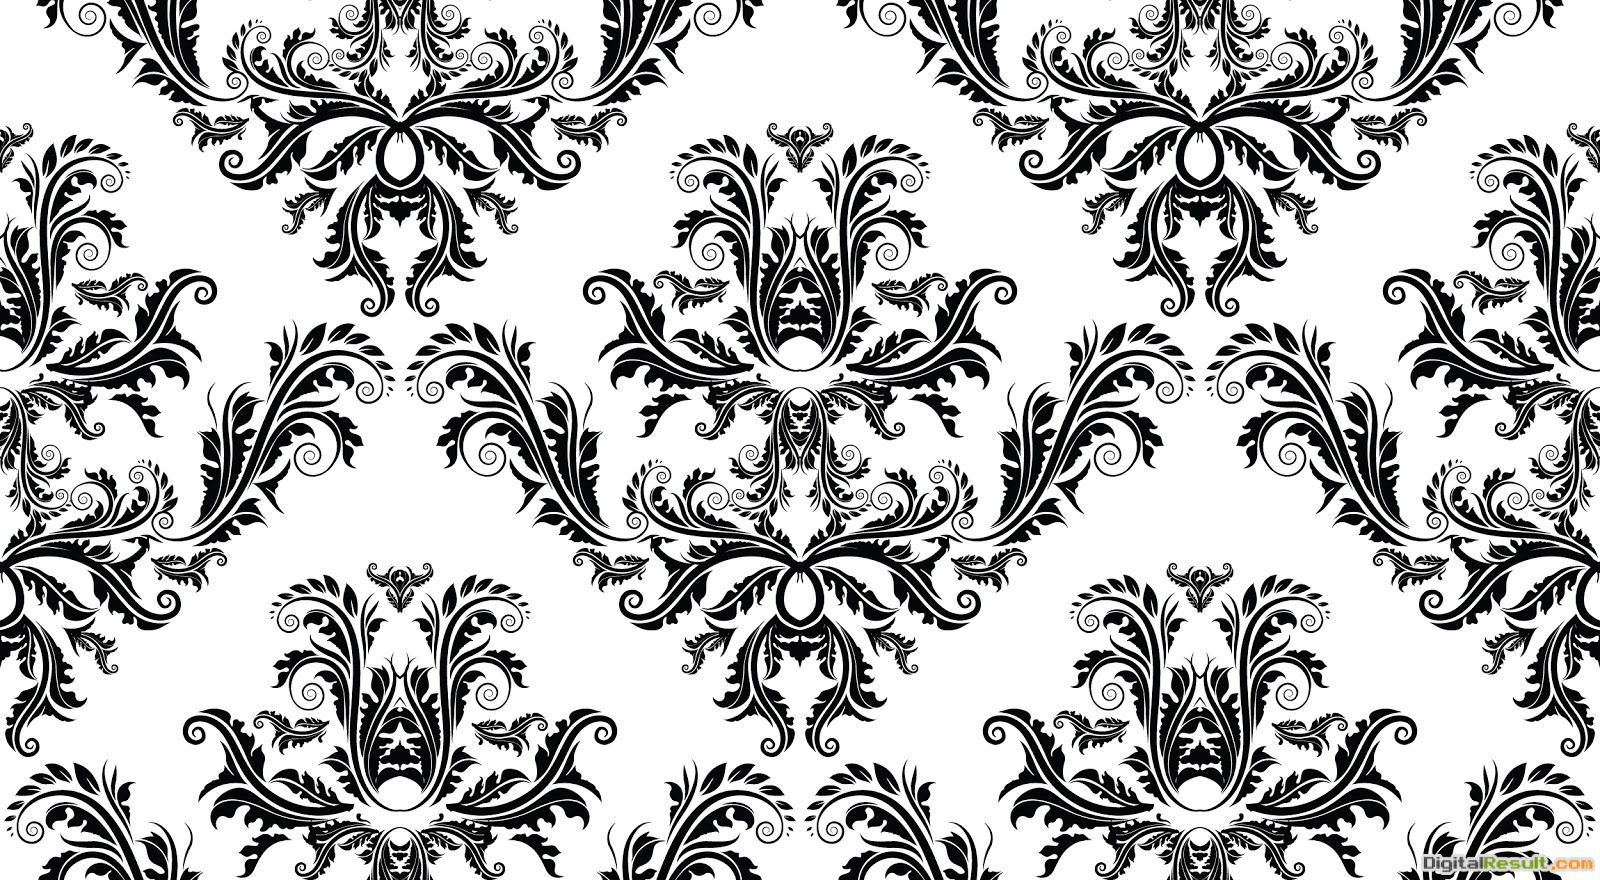 Pattern Vintage Patterns Textures Damask Wallpaper Background | Home 399